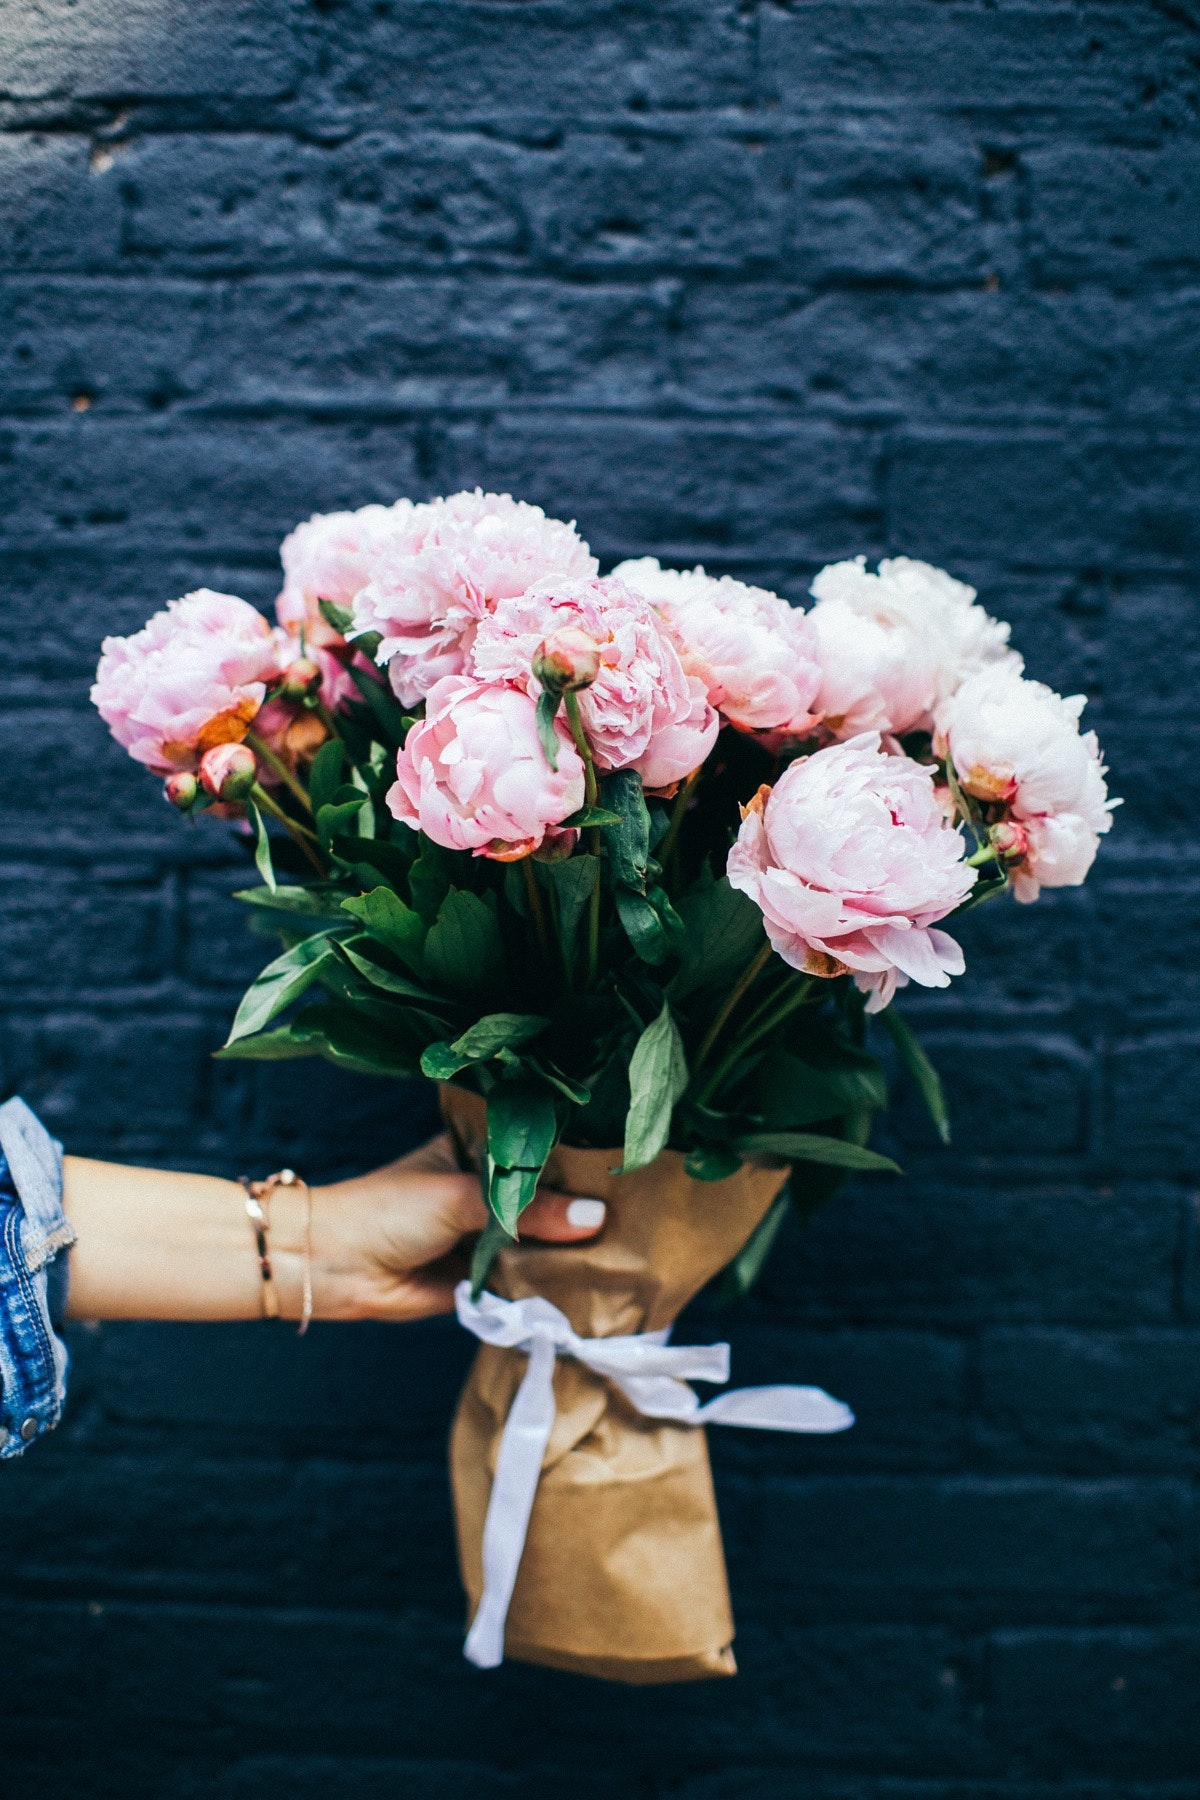 The new accessory could replace the tradition bouquet of flowers. (Credit: Pexels)